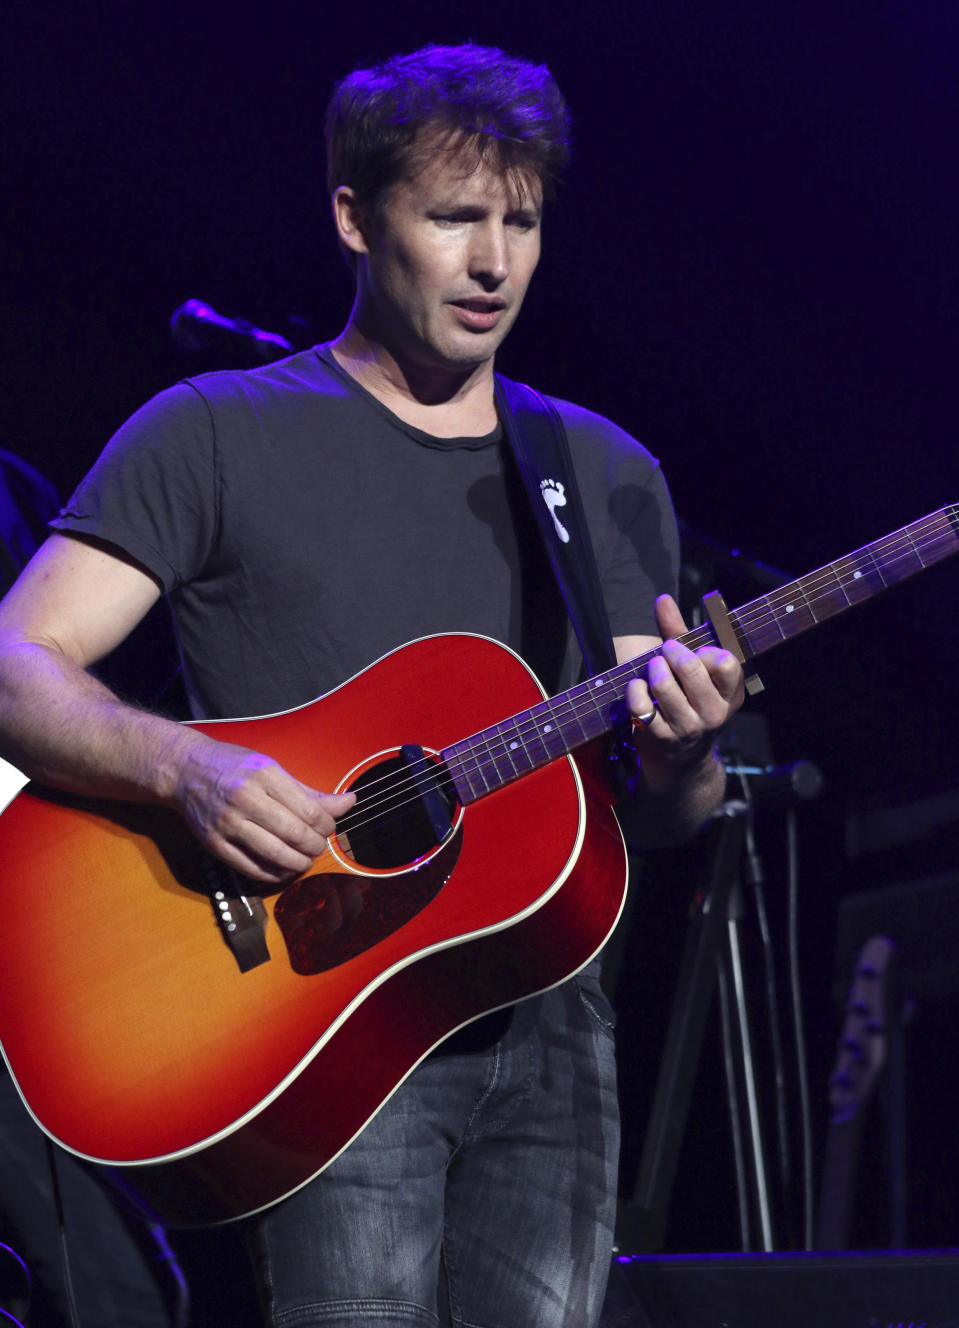 James Blunt performs as the opener for Ed Sheeran at Infinite Energy Center on Friday, August 25, 2017, in Atlanta. (Photo by Robb Cohen/Invision/AP)